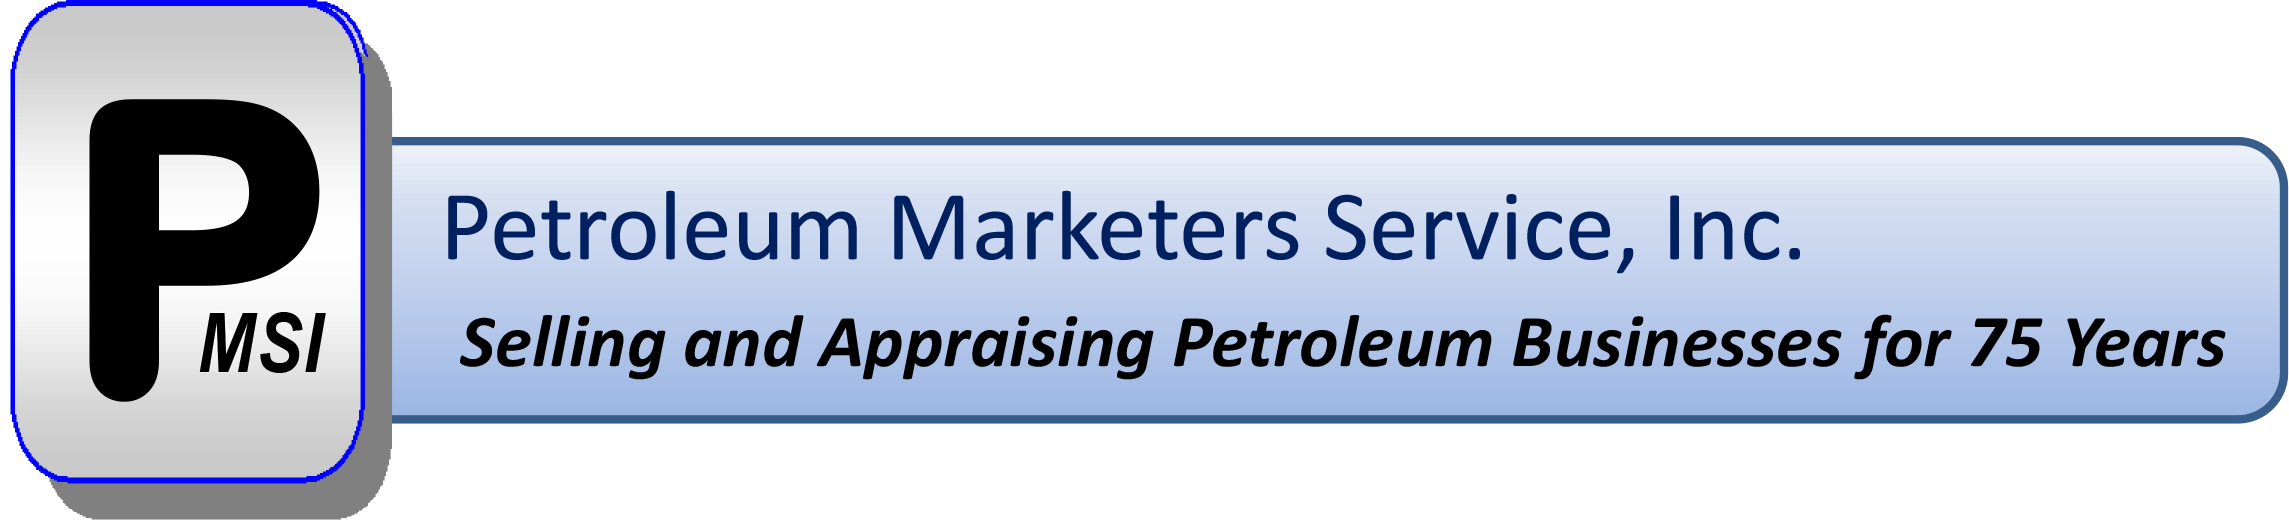 Petroleum Marketers Service, Inc.